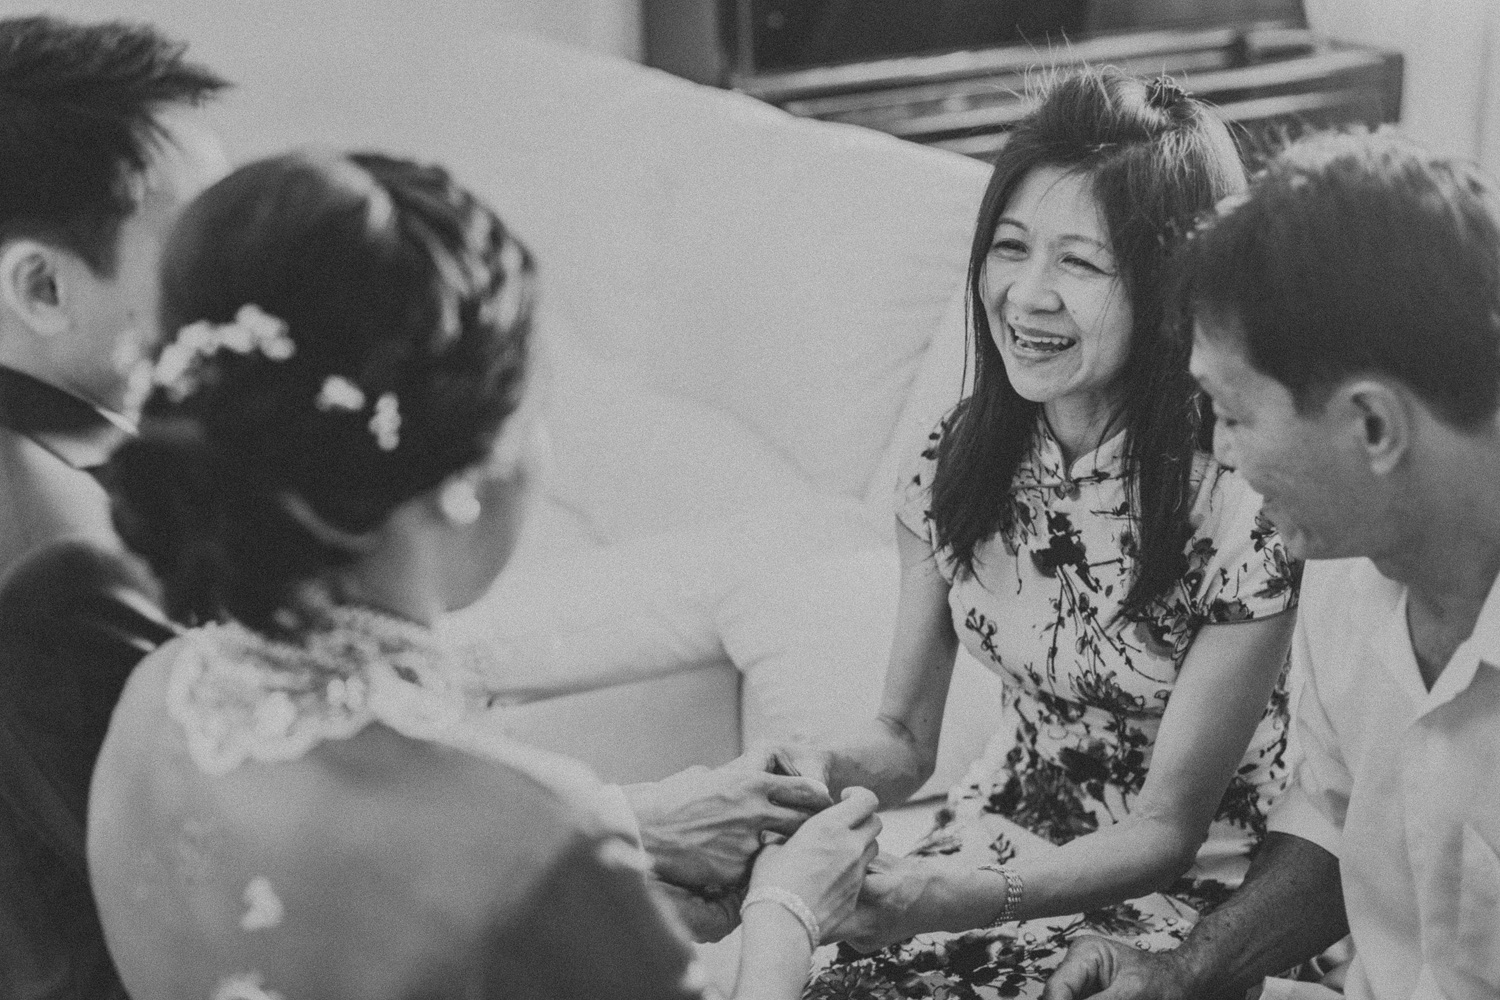 bittersweet photography Singapore wedding photographer jonathan 69